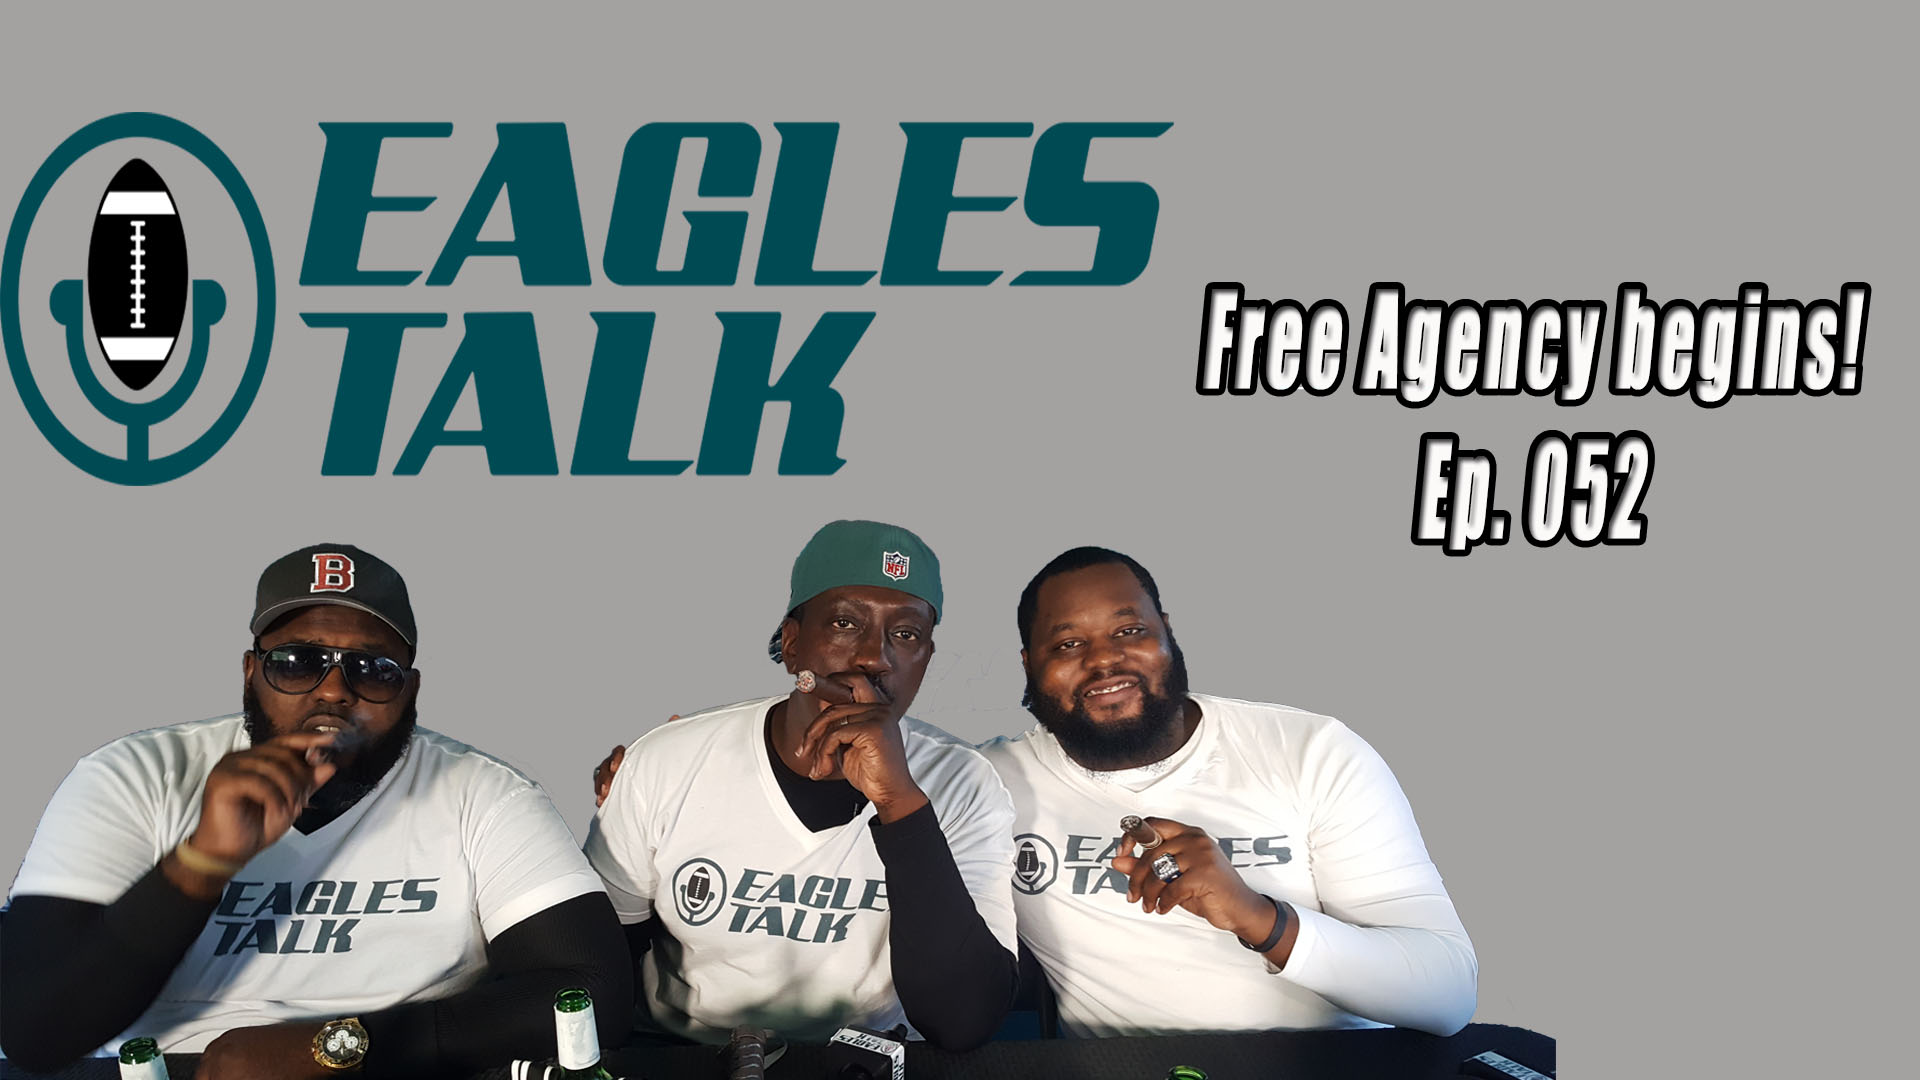 Eagles Talk Ep052: Free Agency begins!